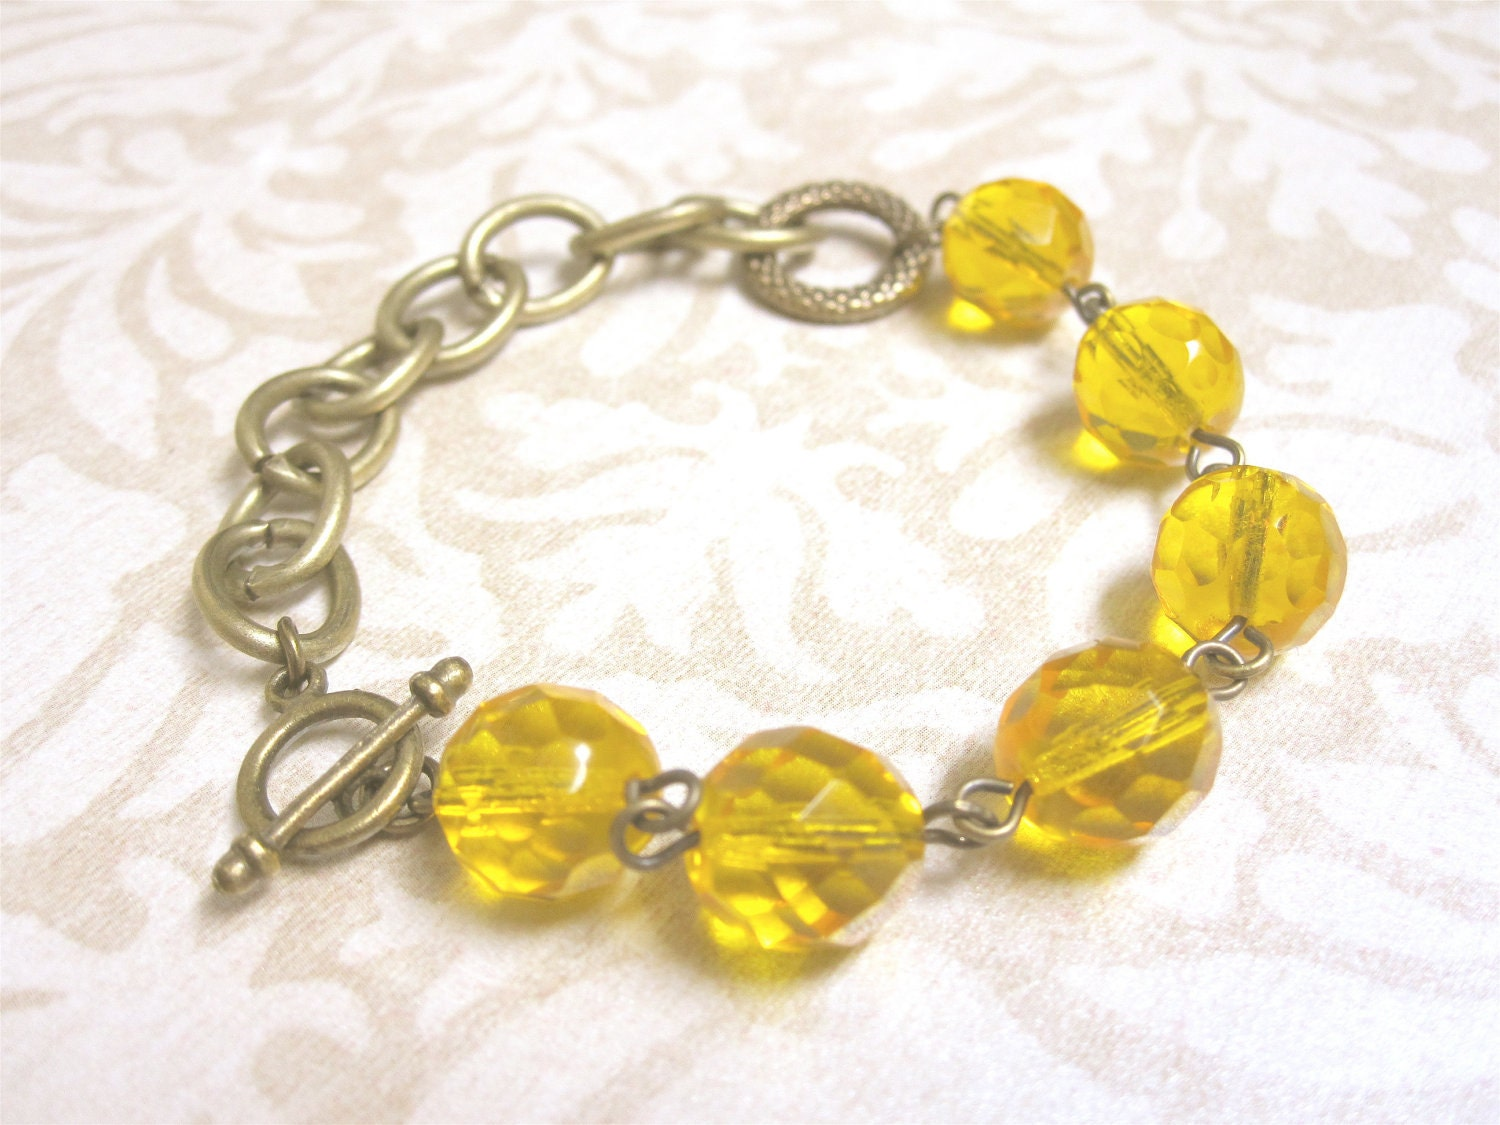 Bracelet Yellow Czech Glass Beads and Antiqued Brass - kbjhandmade